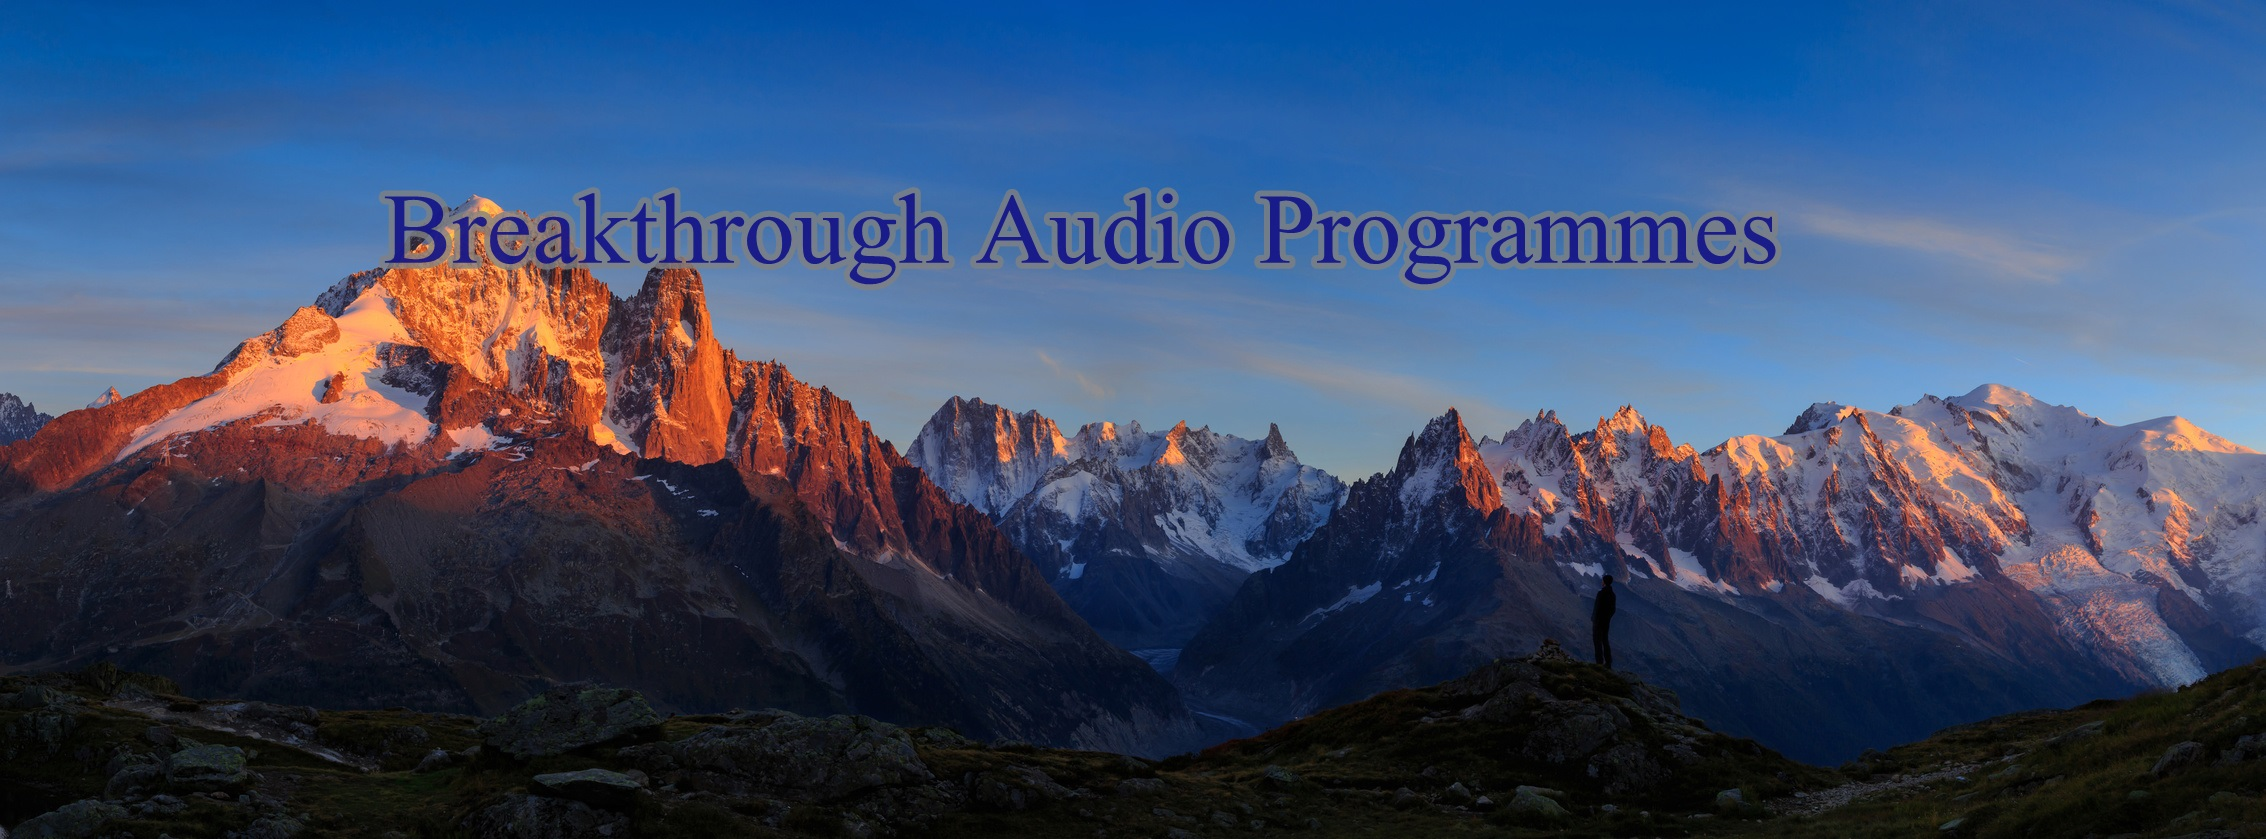 Breakthrough Audio Programmes